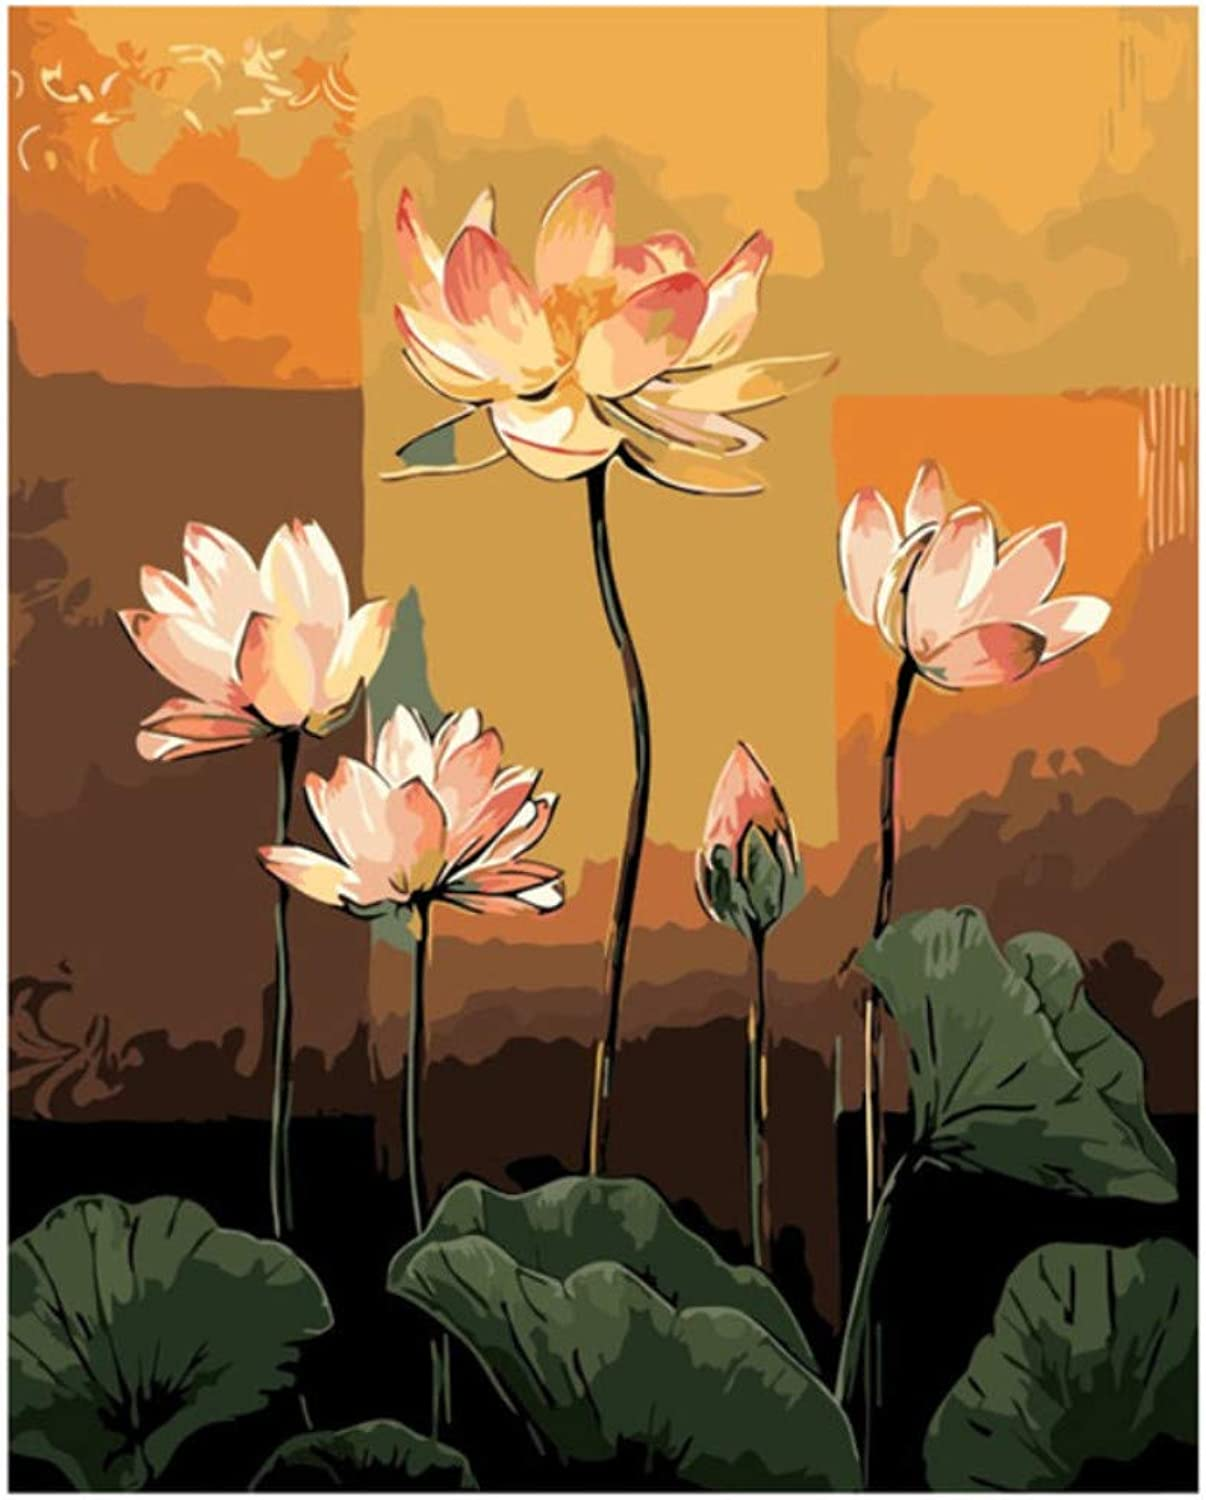 Pink Lotus Flowers Painting Drawing by Number Pictures Paints Painting by Numbers Kits Wall Art Acrylic Picture Gift Room Decor 50x60CM